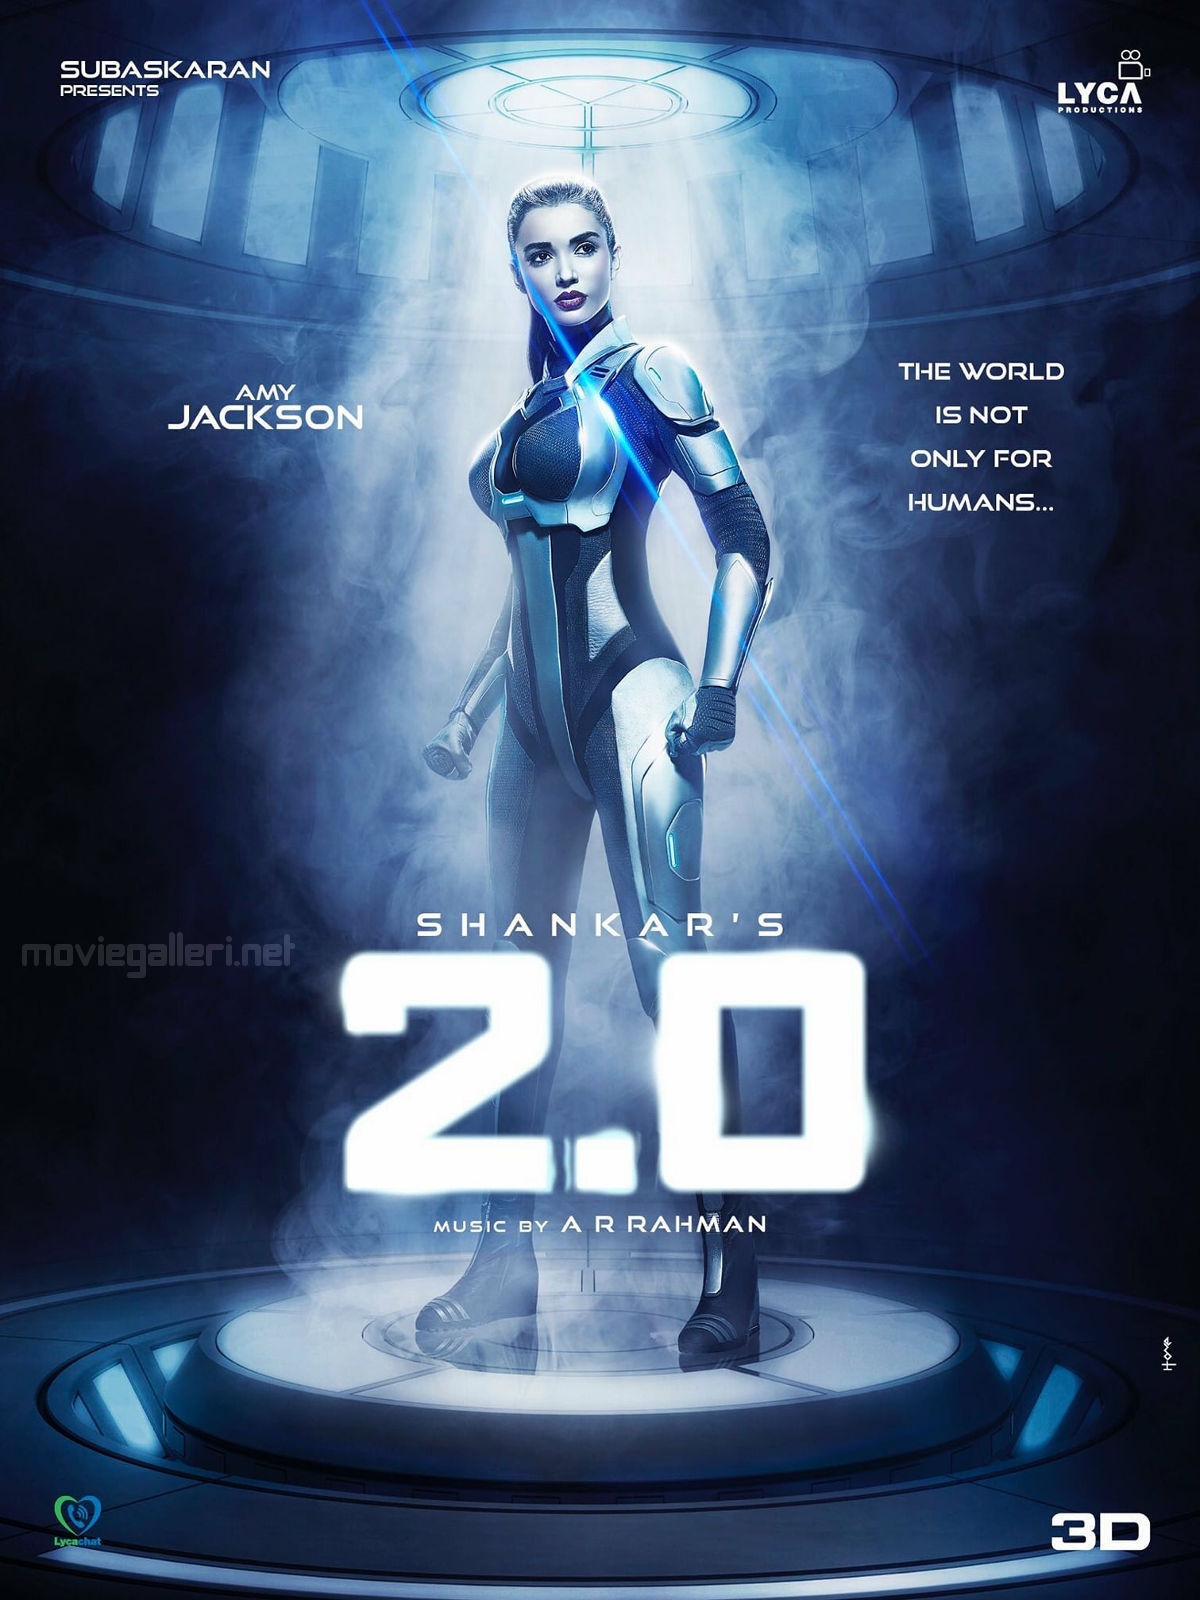 Droid 2 Wallpapers Girl 2 0 Movie Amy Jackson First Look Poster New Movie Posters